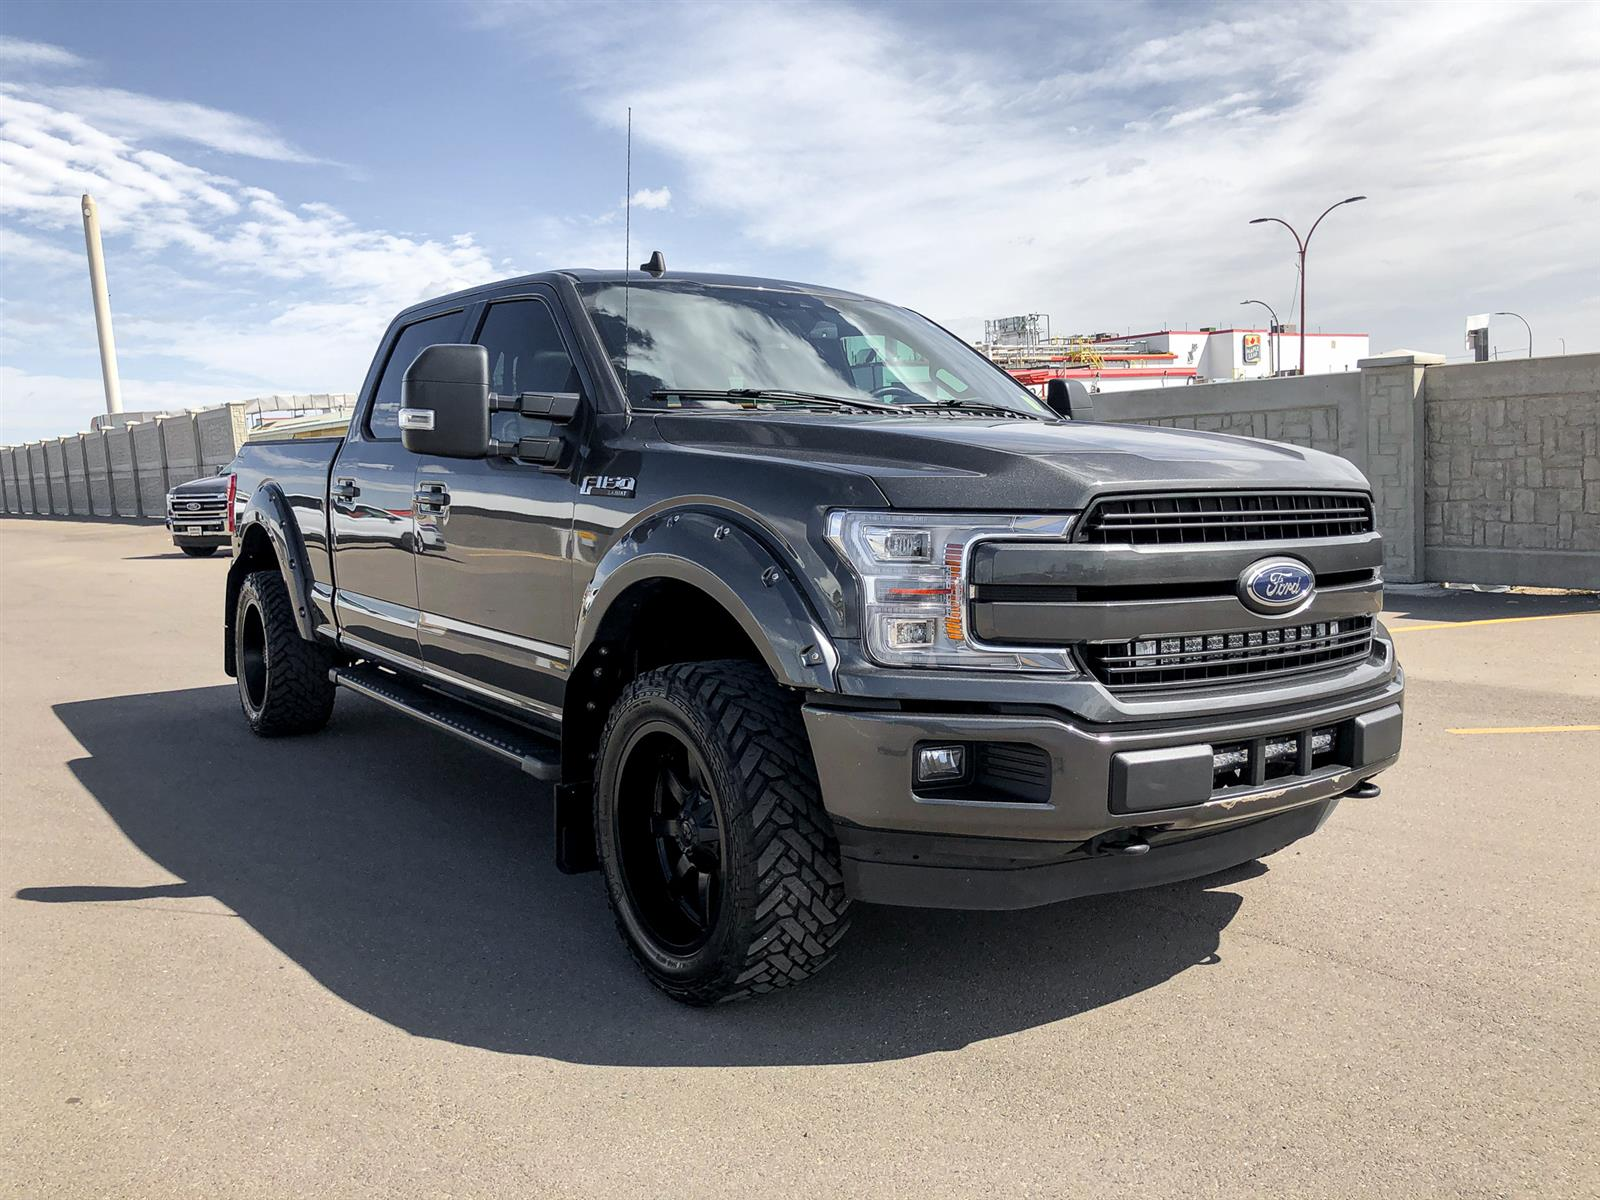 2019 Ford F-150 LARIAT | 5.0L V8 | 4X4 | TONNEAU COVER | SPORT PACKAGE